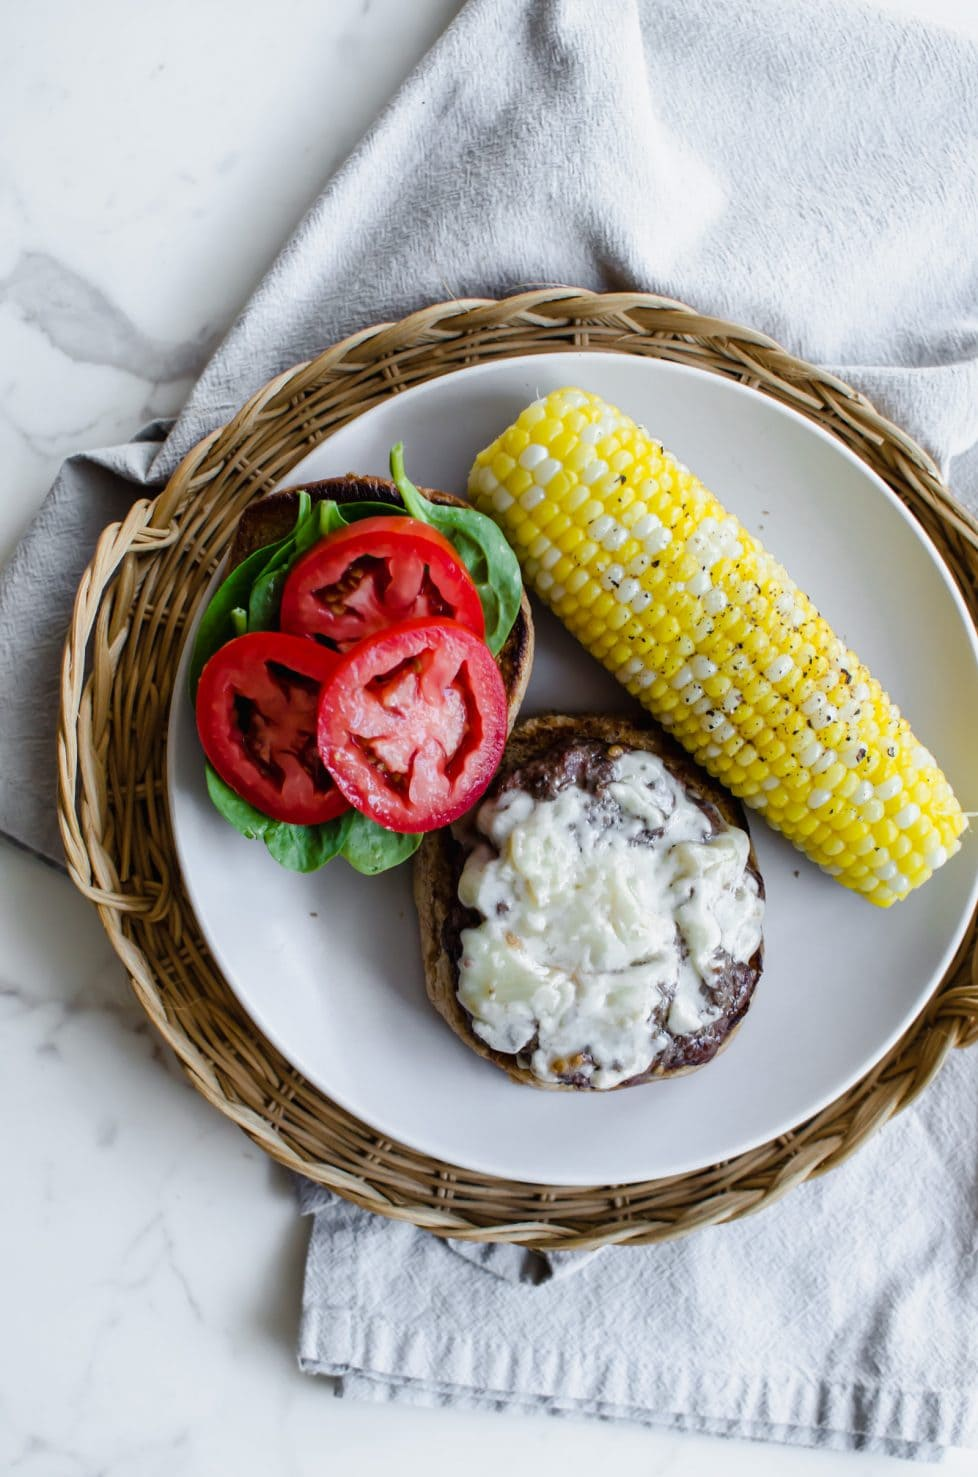 A view from above of an open-faced burger with sliced tomato, spinach, white cheddar, and an ear of corn on the side.